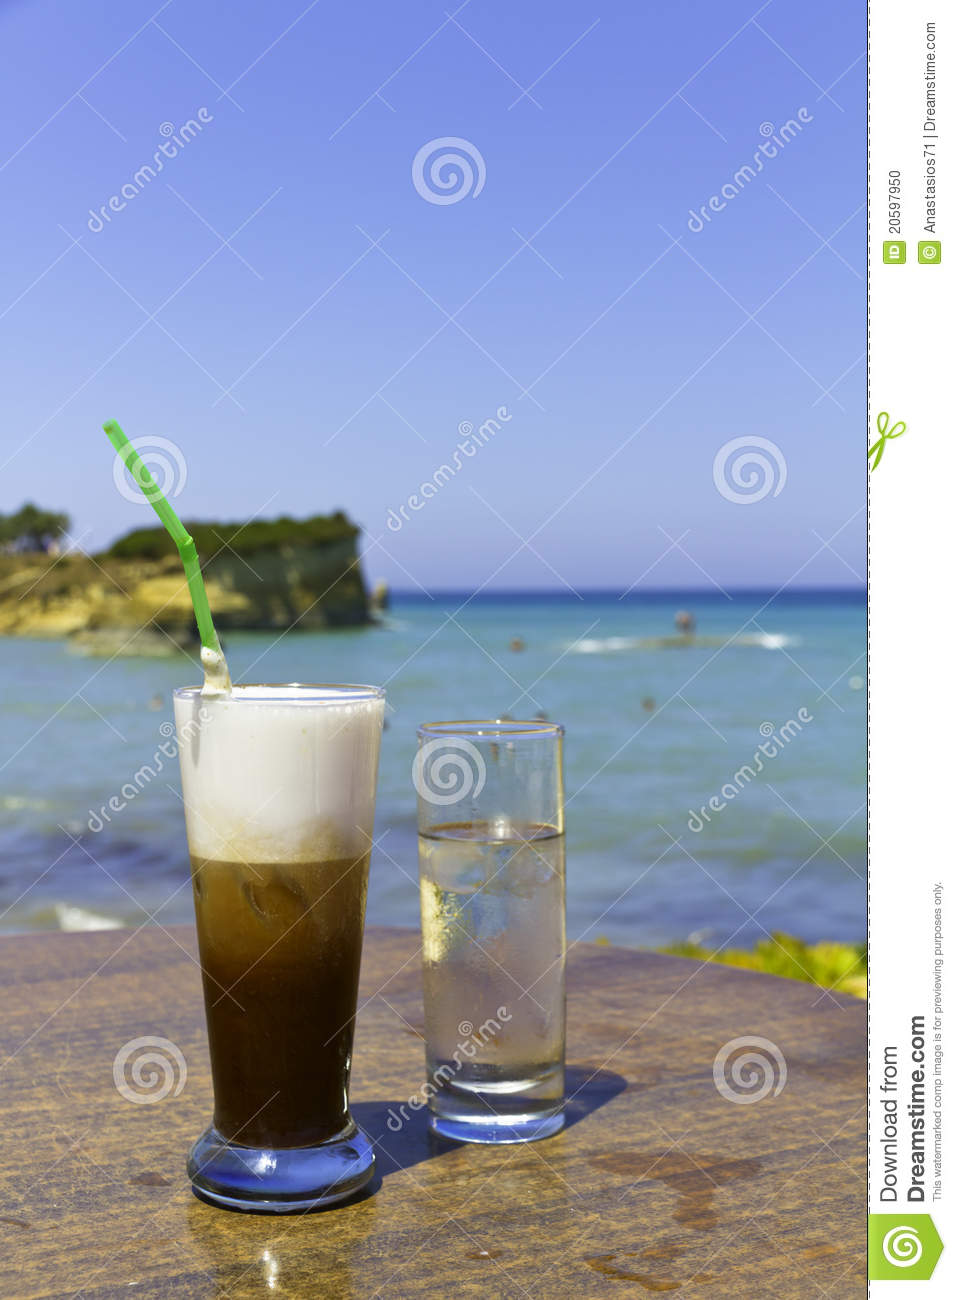 Iced Coffee In An Exotic Beach Stock Photo - Image: 20597950